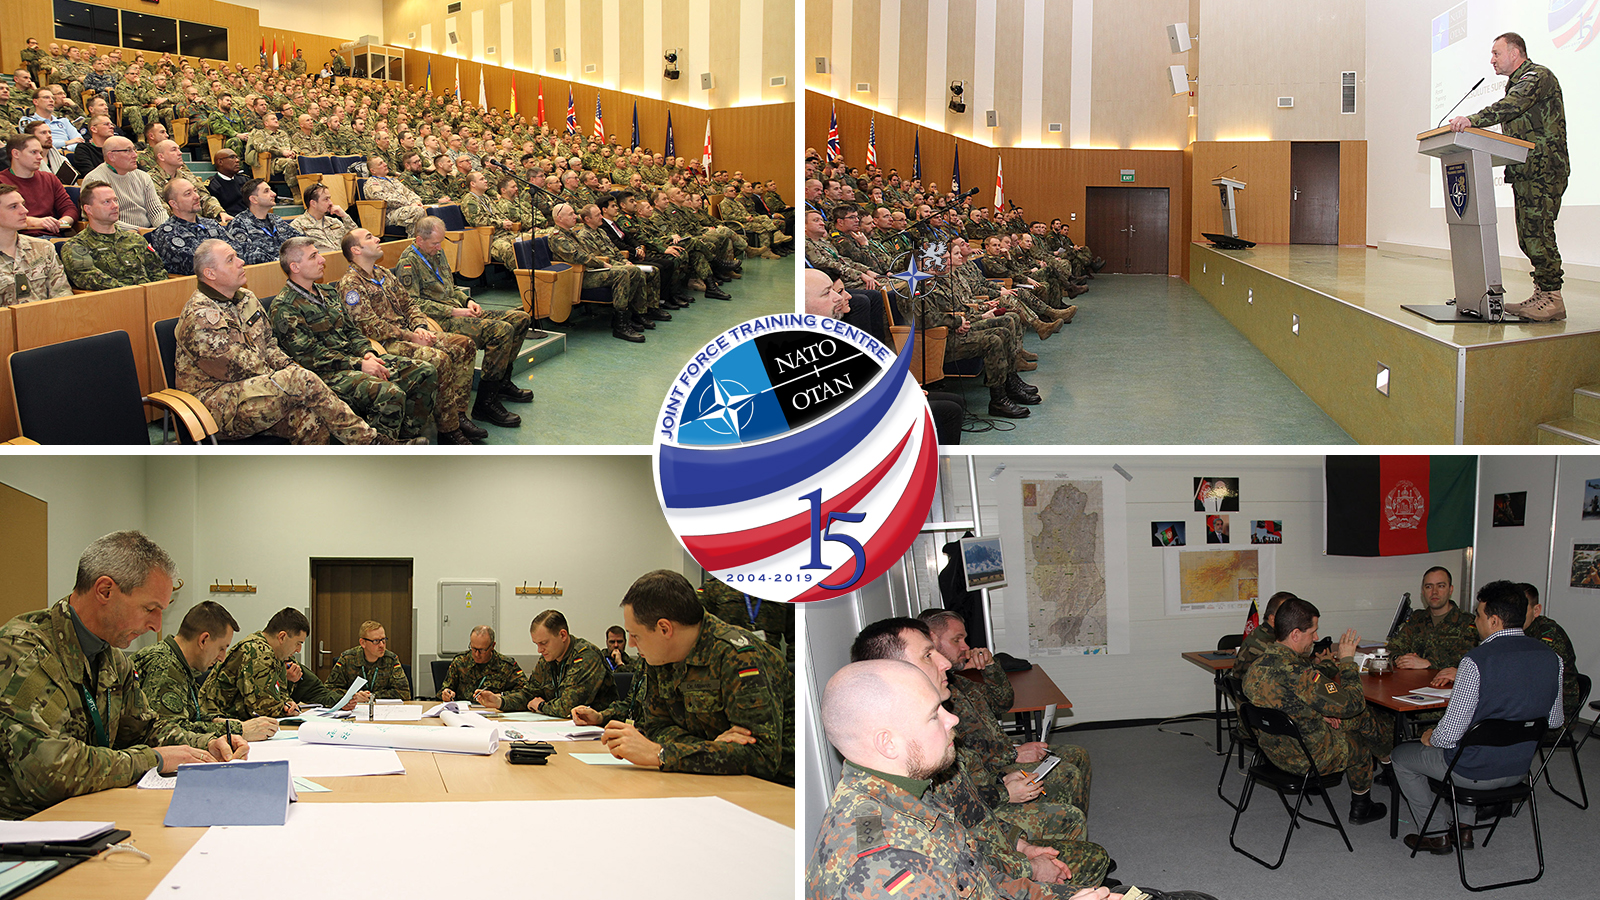 2019 pre-deployment training launched at JFTC